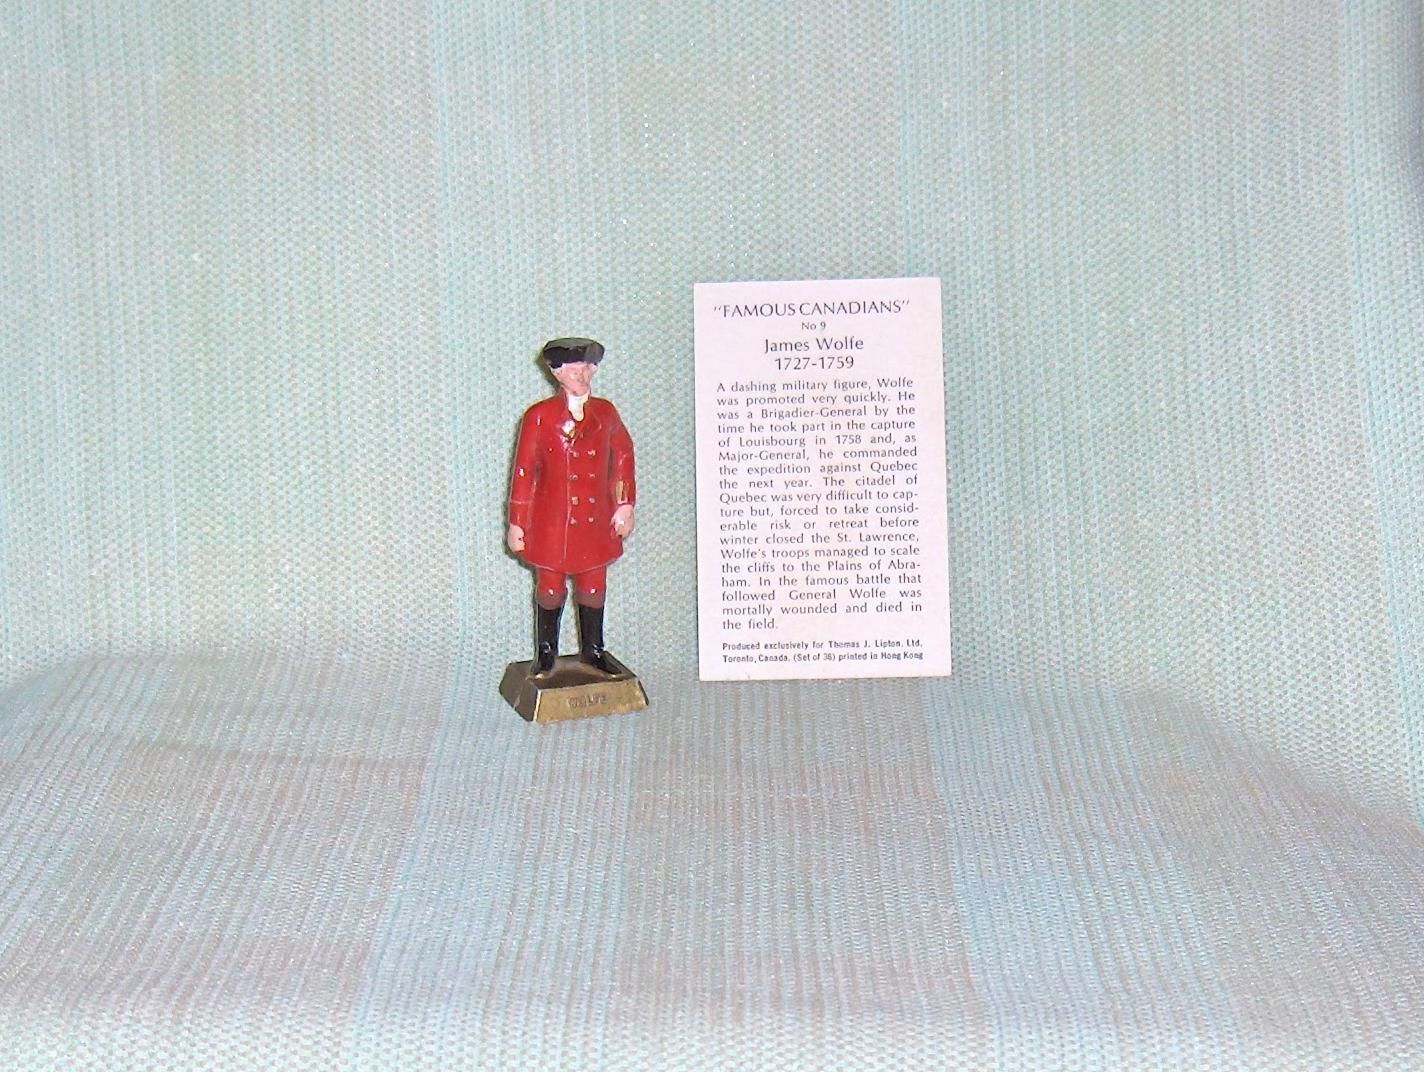 Primary image for Famous Canadians James Wolfe  Number 9 With Information Card